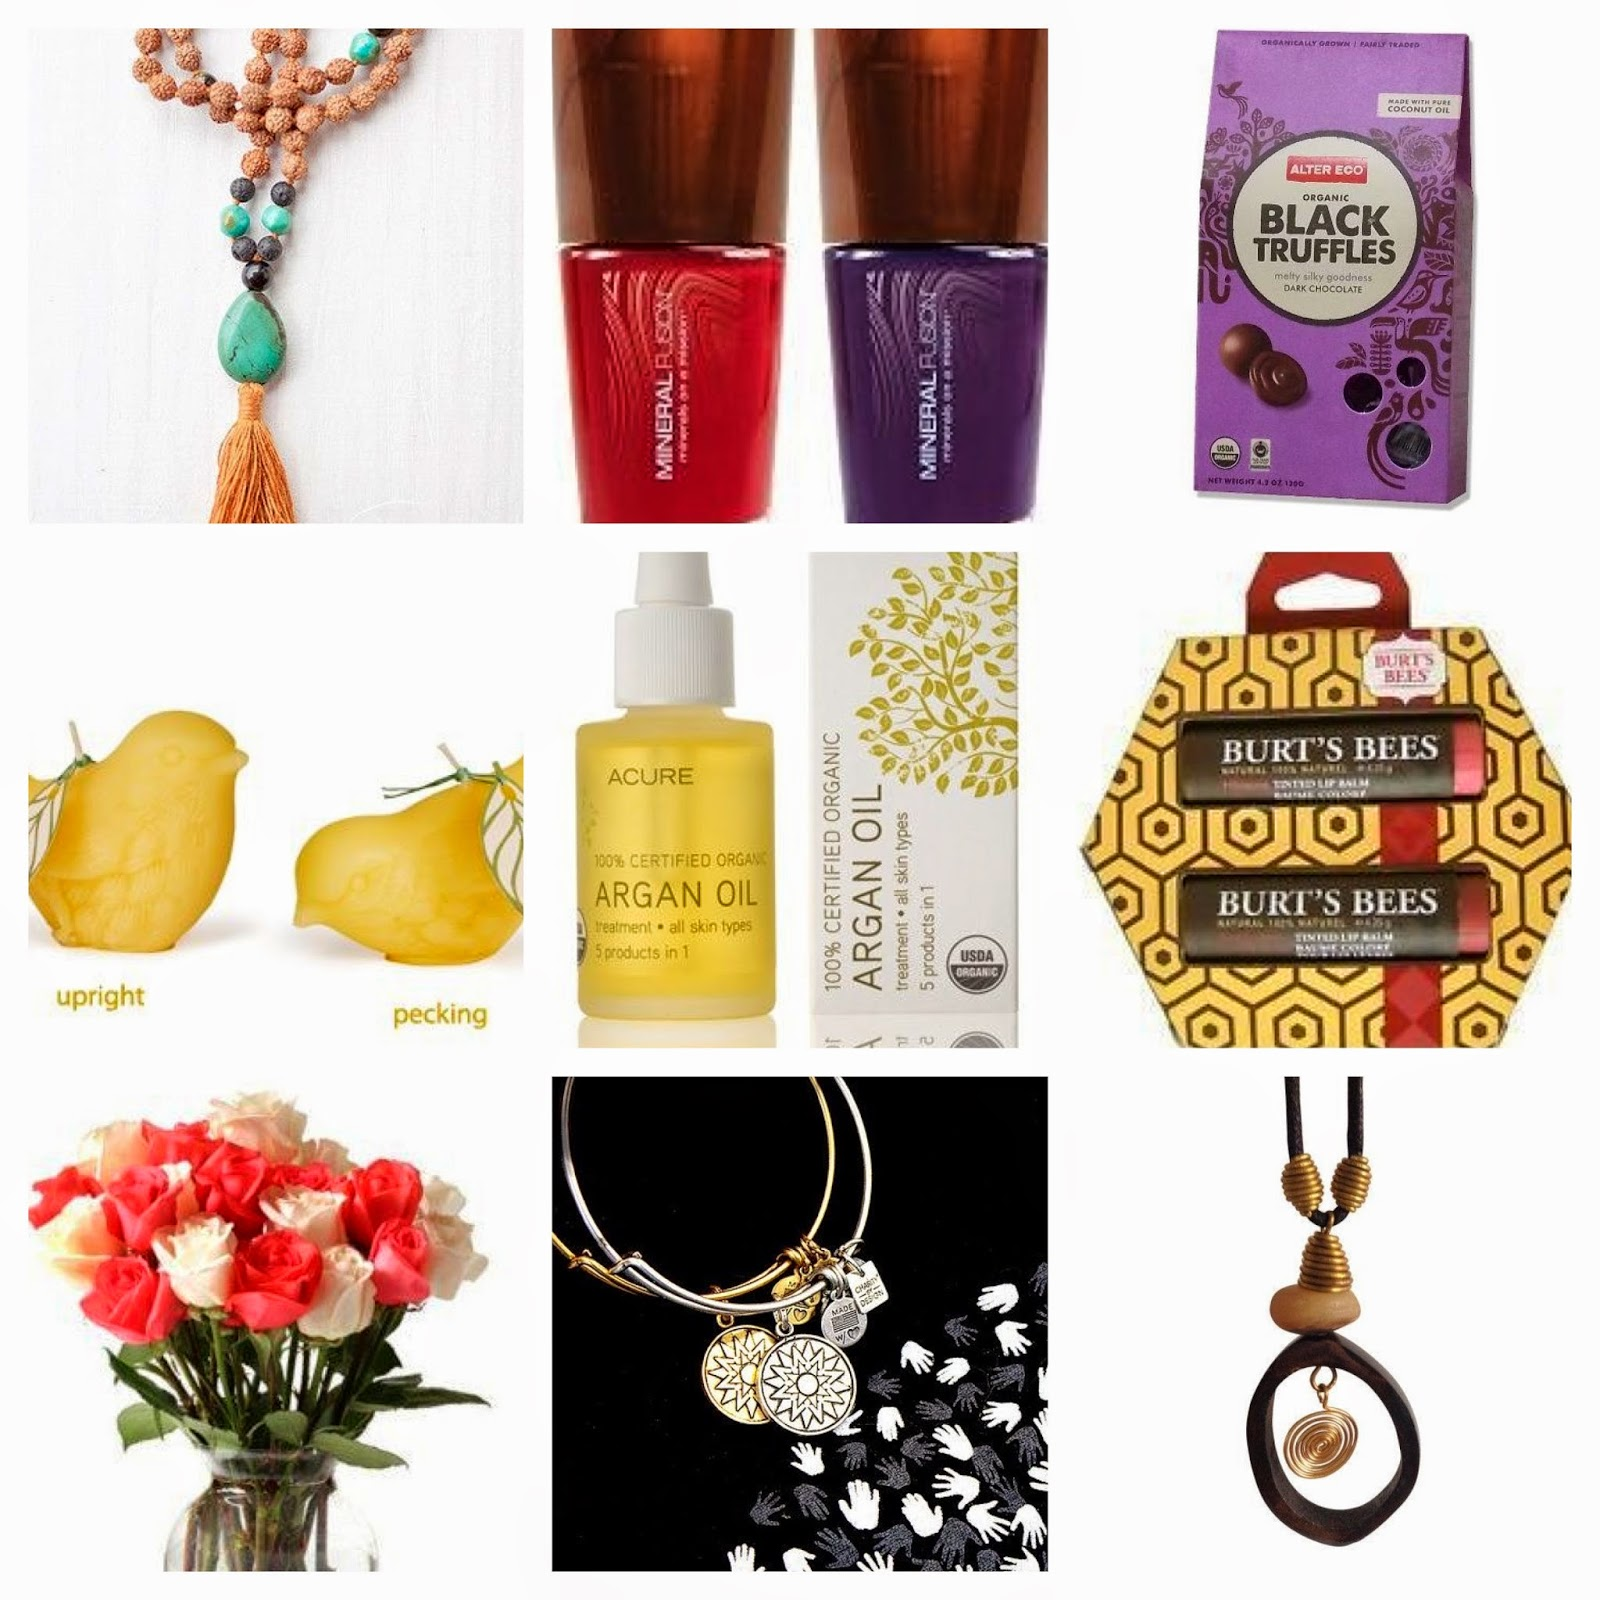 Mother's Day Gift Guide: fair trade + homemade + gifts that give back